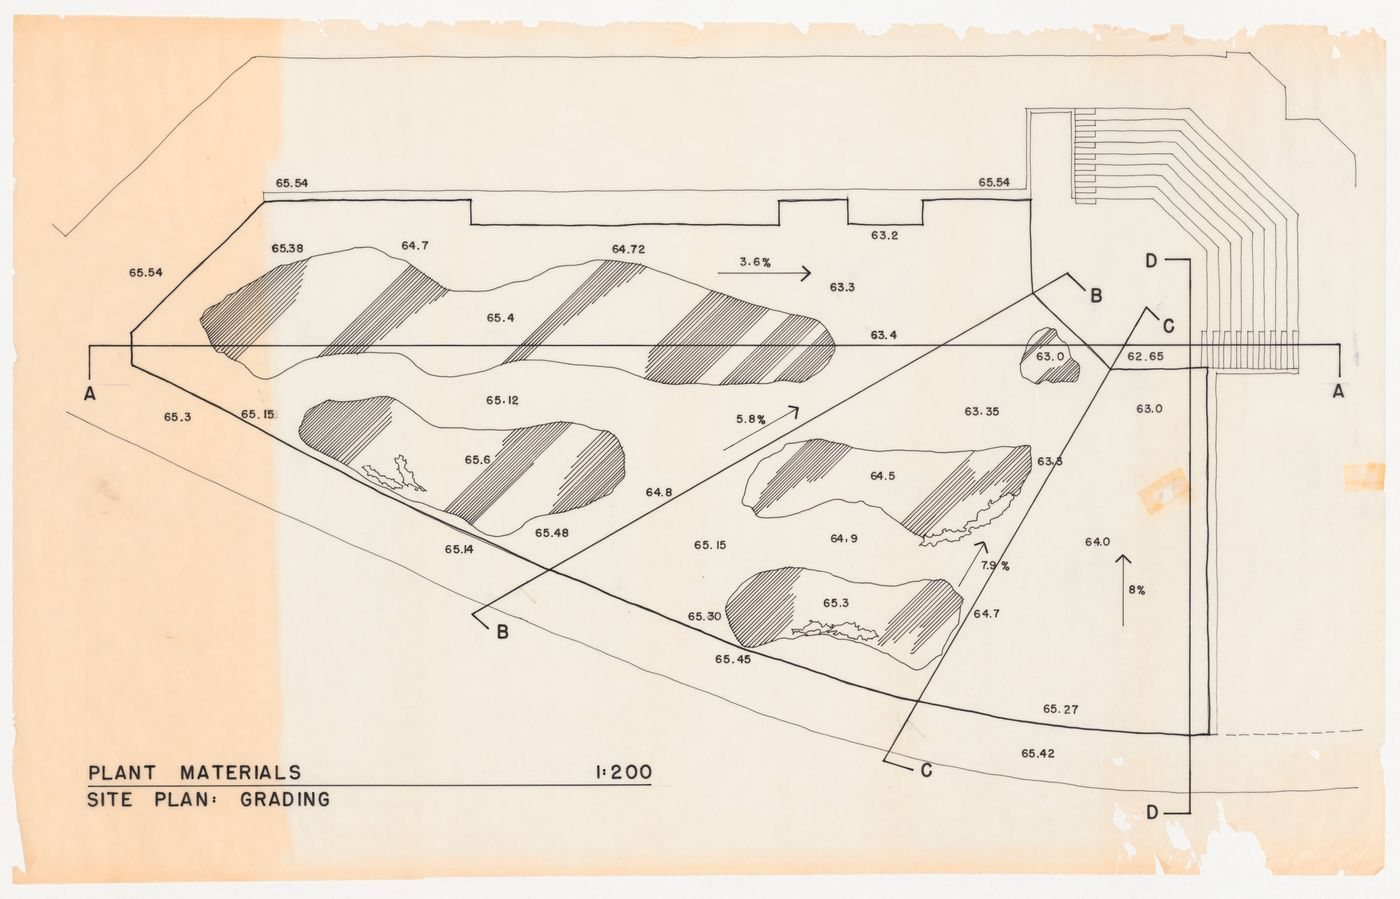 Site plan for plant materials showing grading for National Gallery of Canada, Ottawa, Ontario